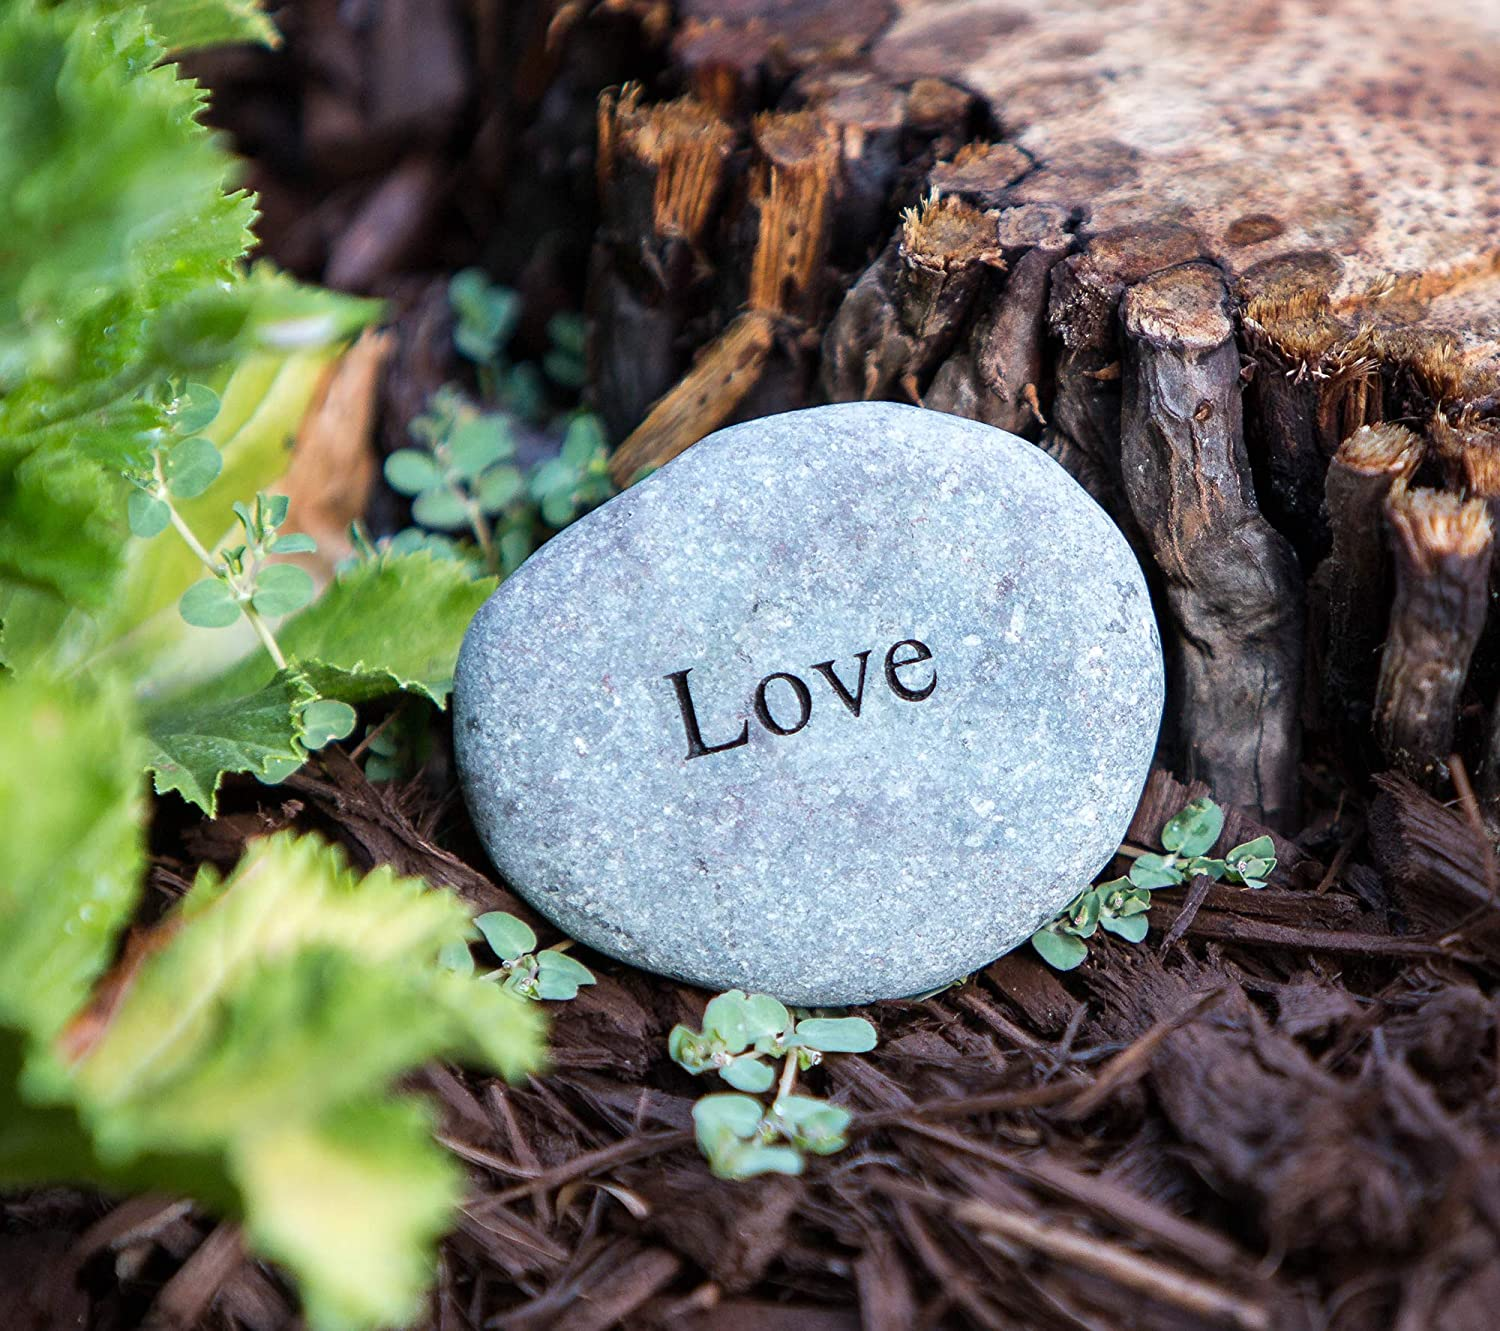 Garden Age Supply Love Engraved Stones Natural Beach Pebble Inspirational Message Stones, Great Anniversary or General Romantic Gifts